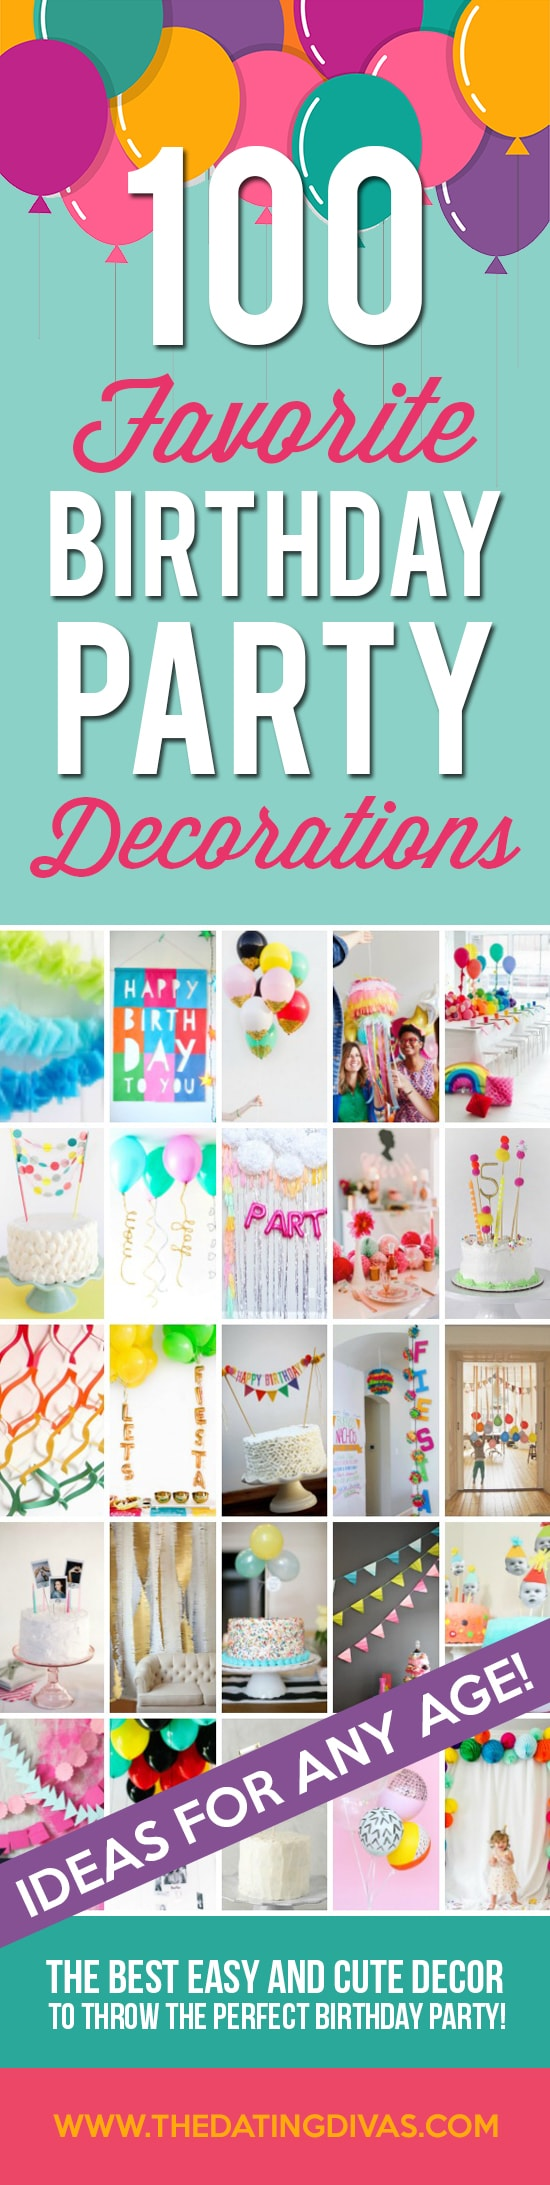 100 Of The Best Birthday Party Decorations